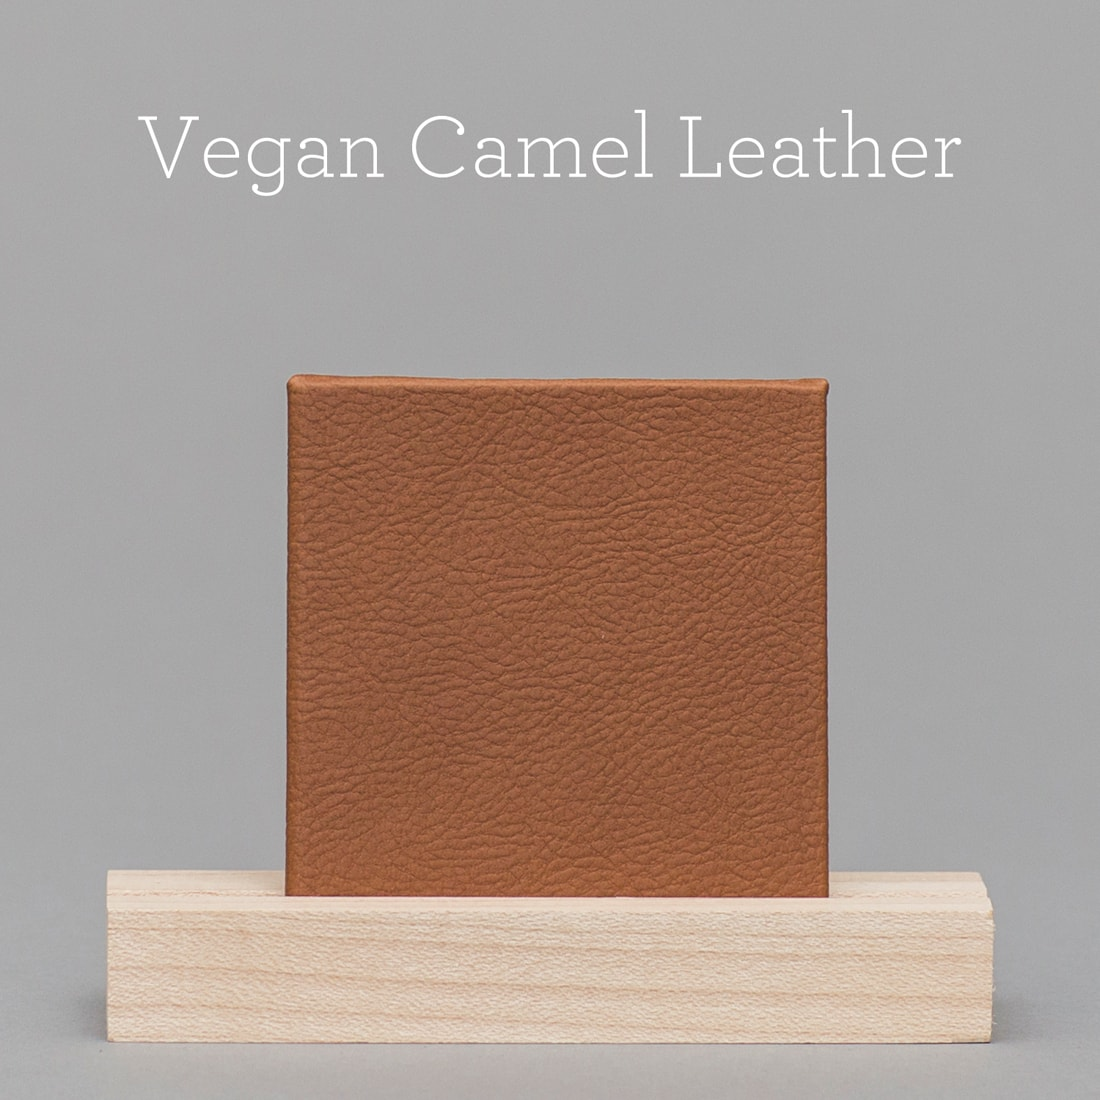 CamelLeather